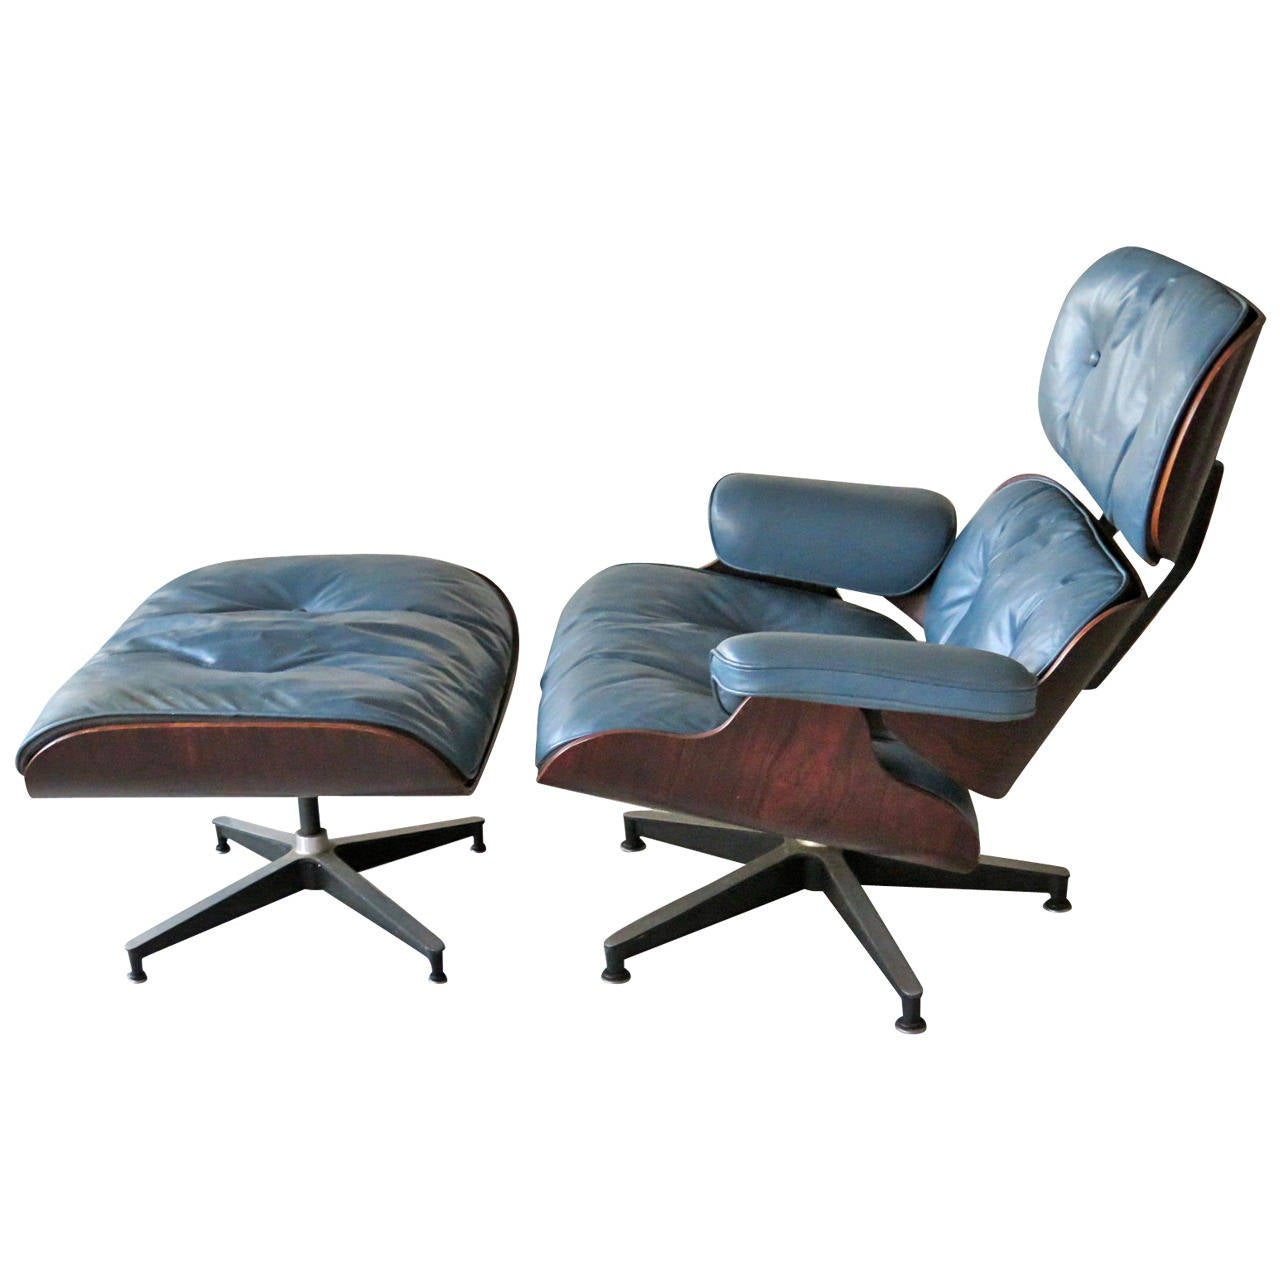 Charles Eames Herman Miller Lounge Chair In Blue Leather